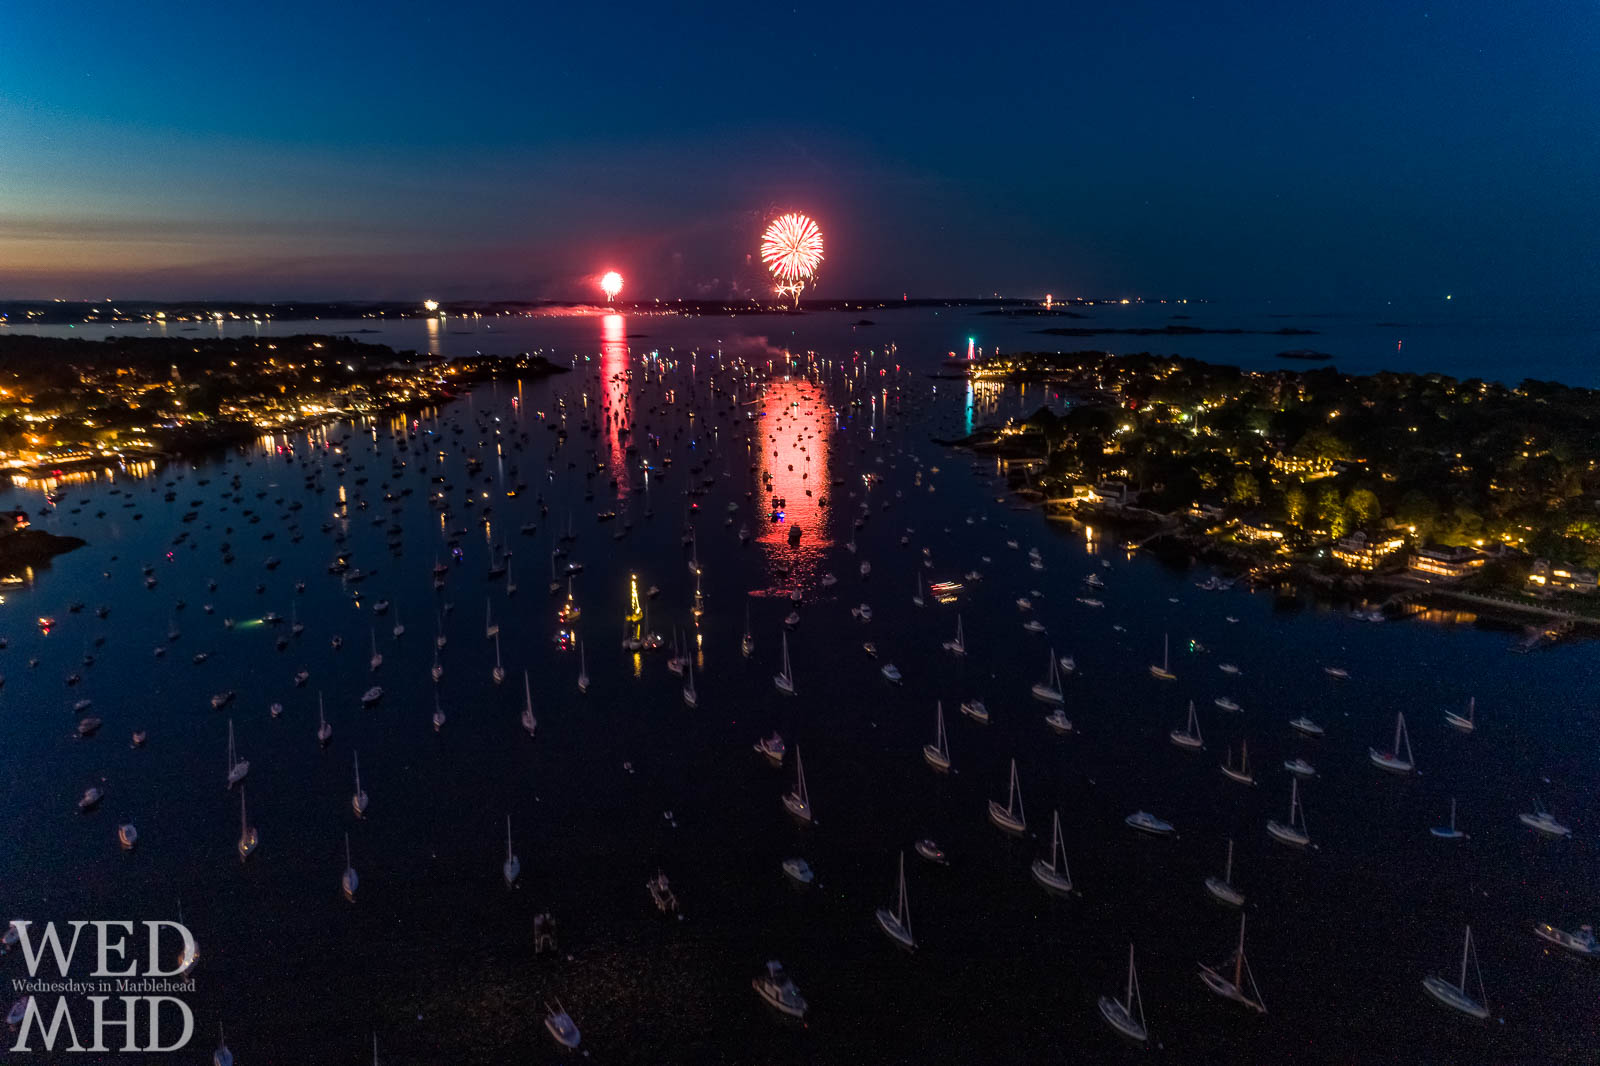 An aerial view of fireworks over Marblehead Harbor to celebrate Independence Day. The boats and lighthouse make for a picture perfect Marblehead fourth of July.